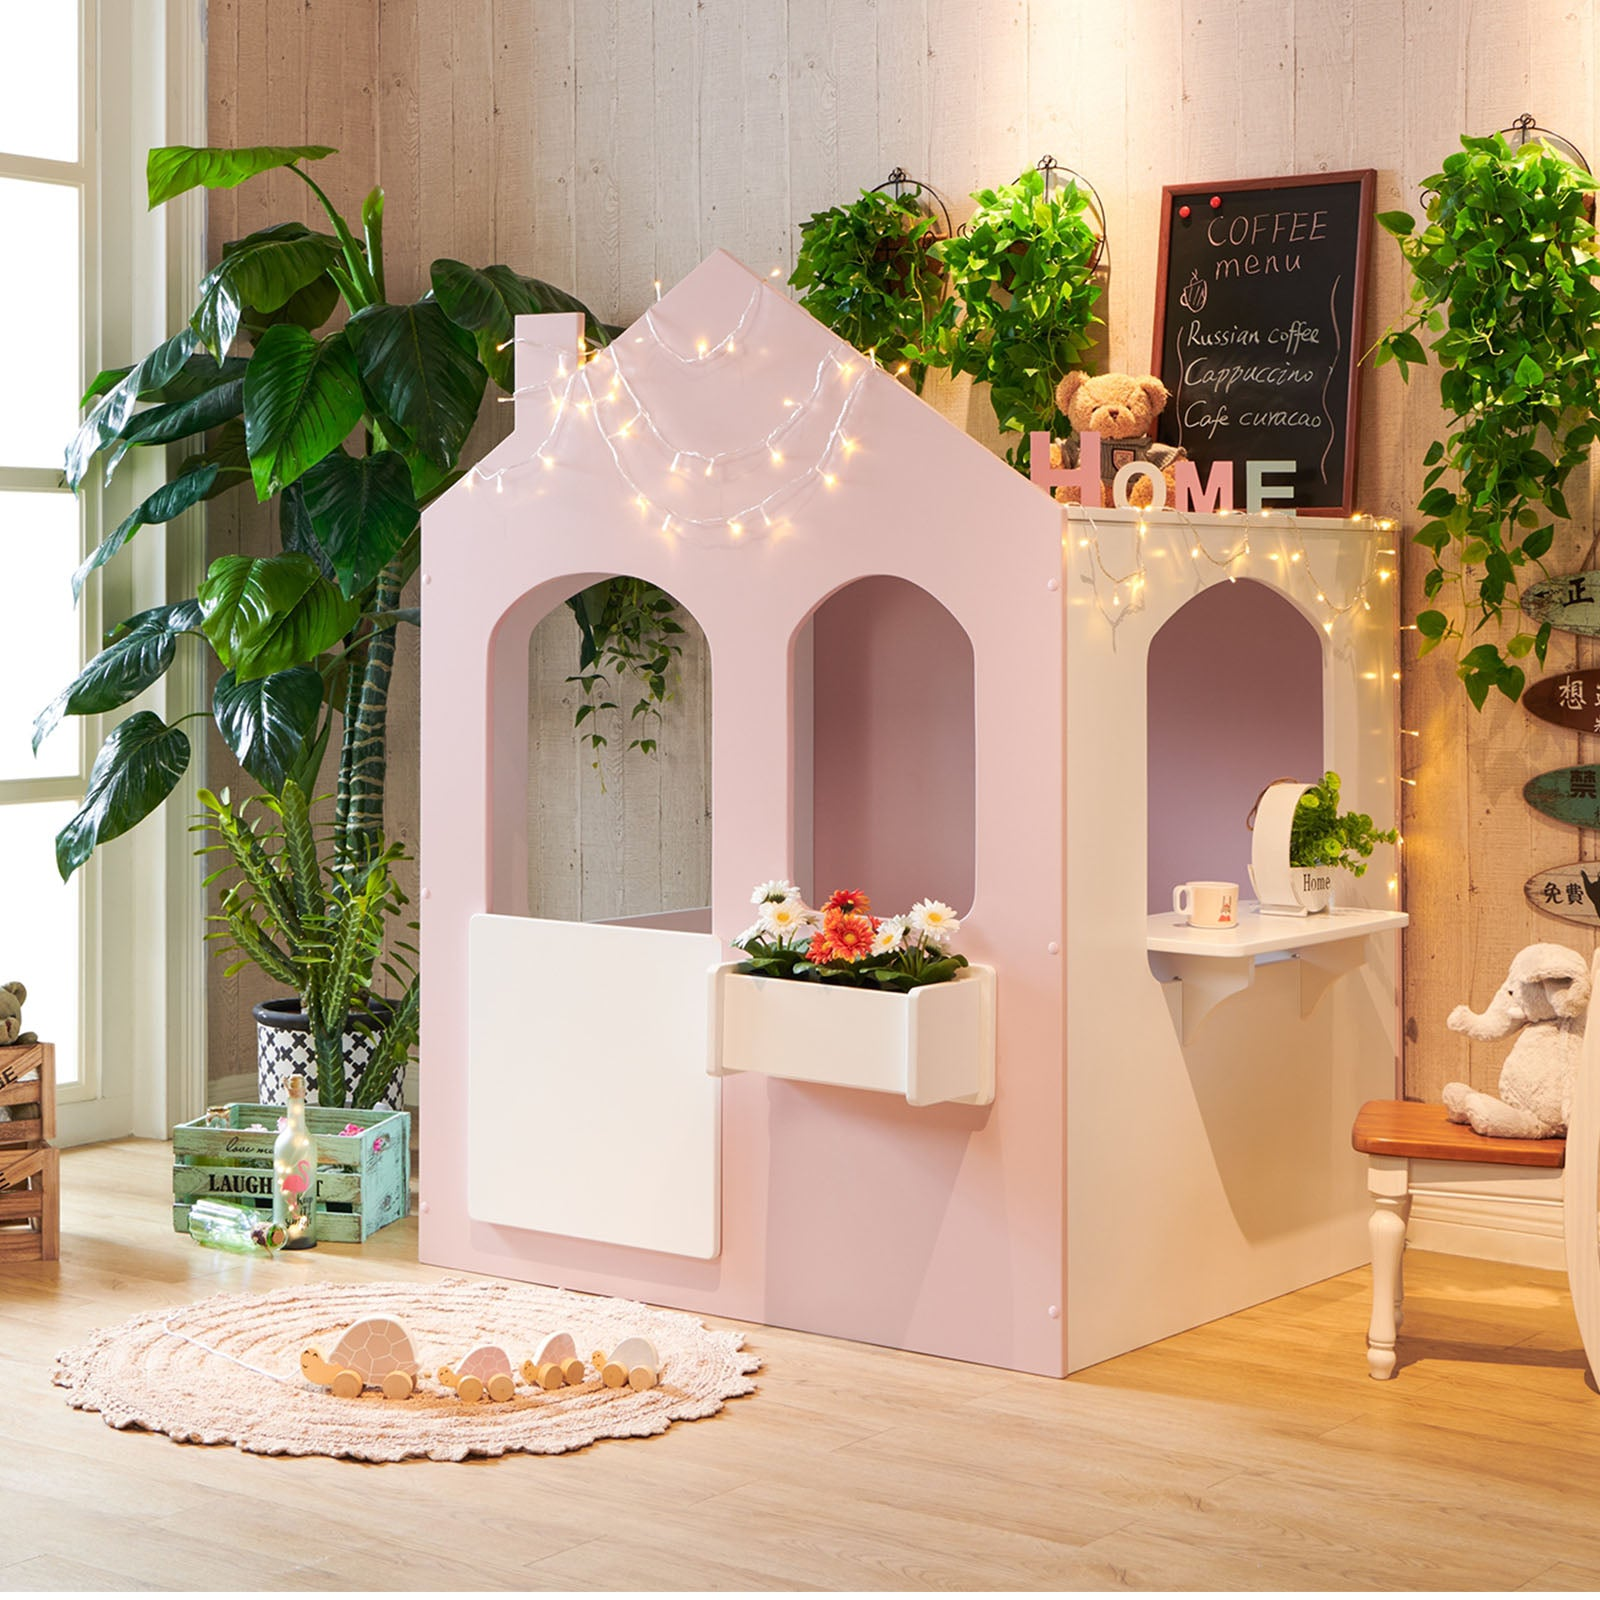 Kids Playhouse  HK-C003-P -  منزل للعب الاطفال - Shop Online Furniture and Home Decor Store in Dubai, UAE at ebarza